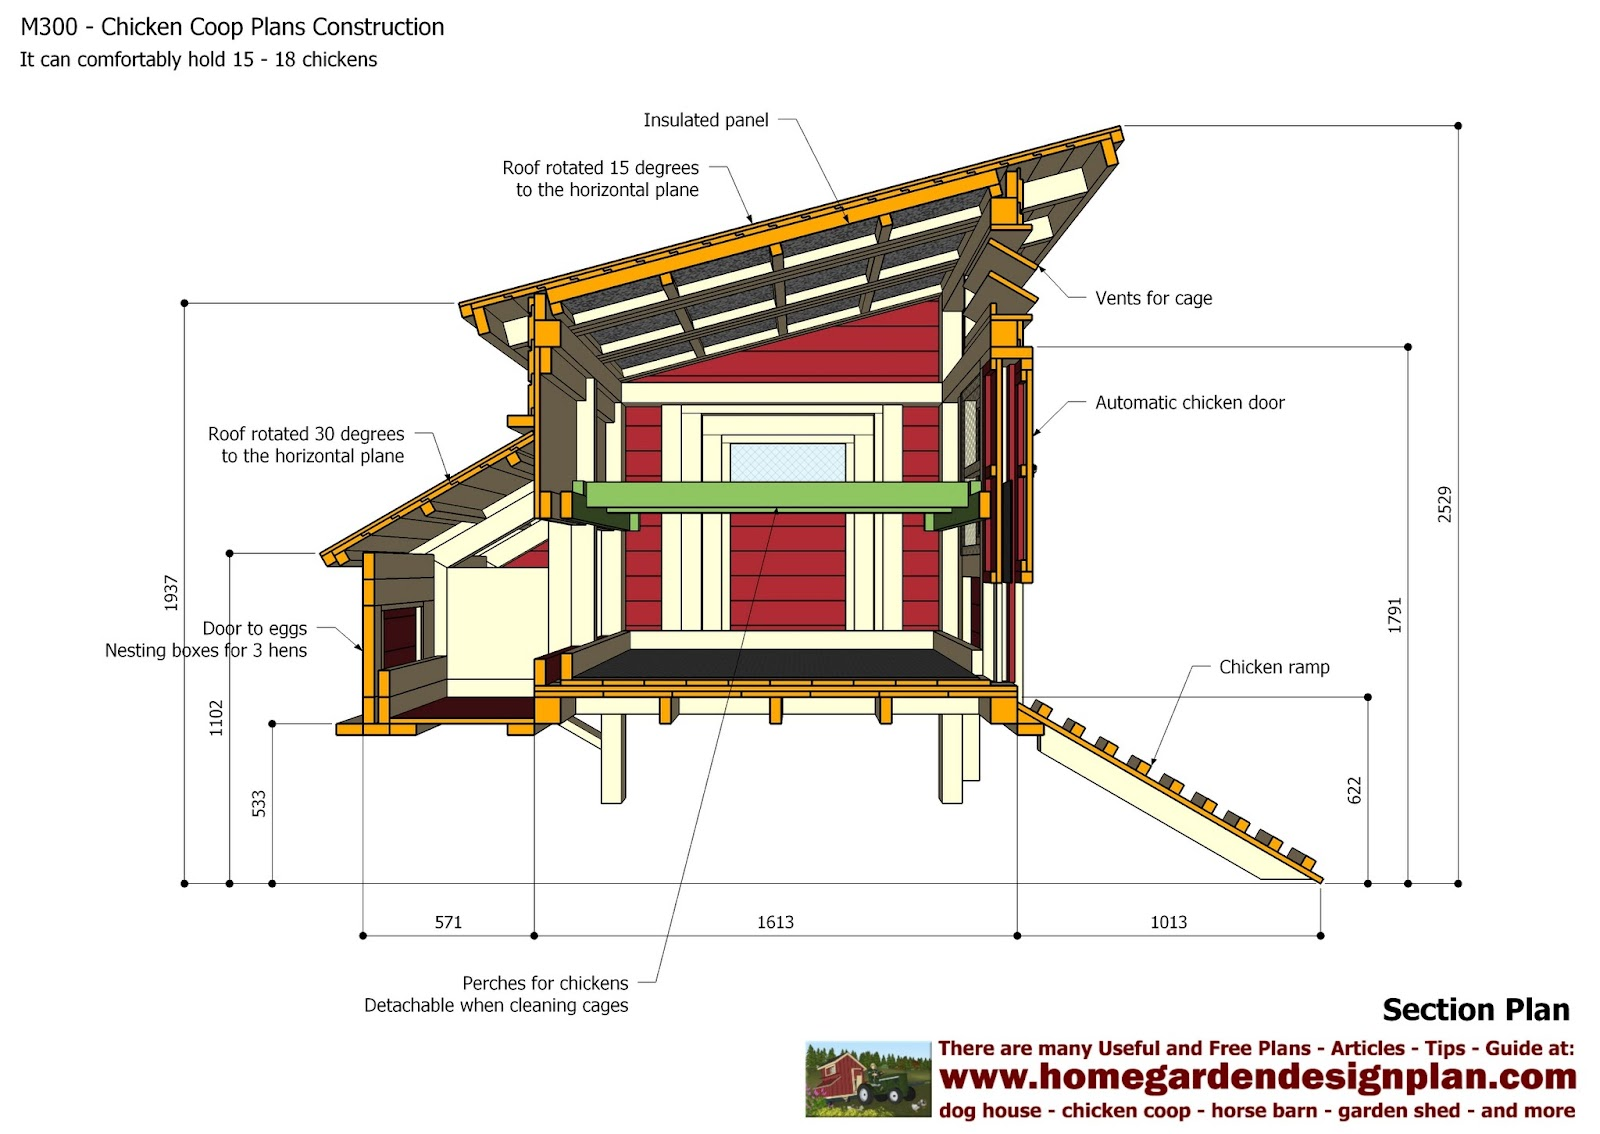 Home garden plans m300 chicken coop plans chicken for Design plan build